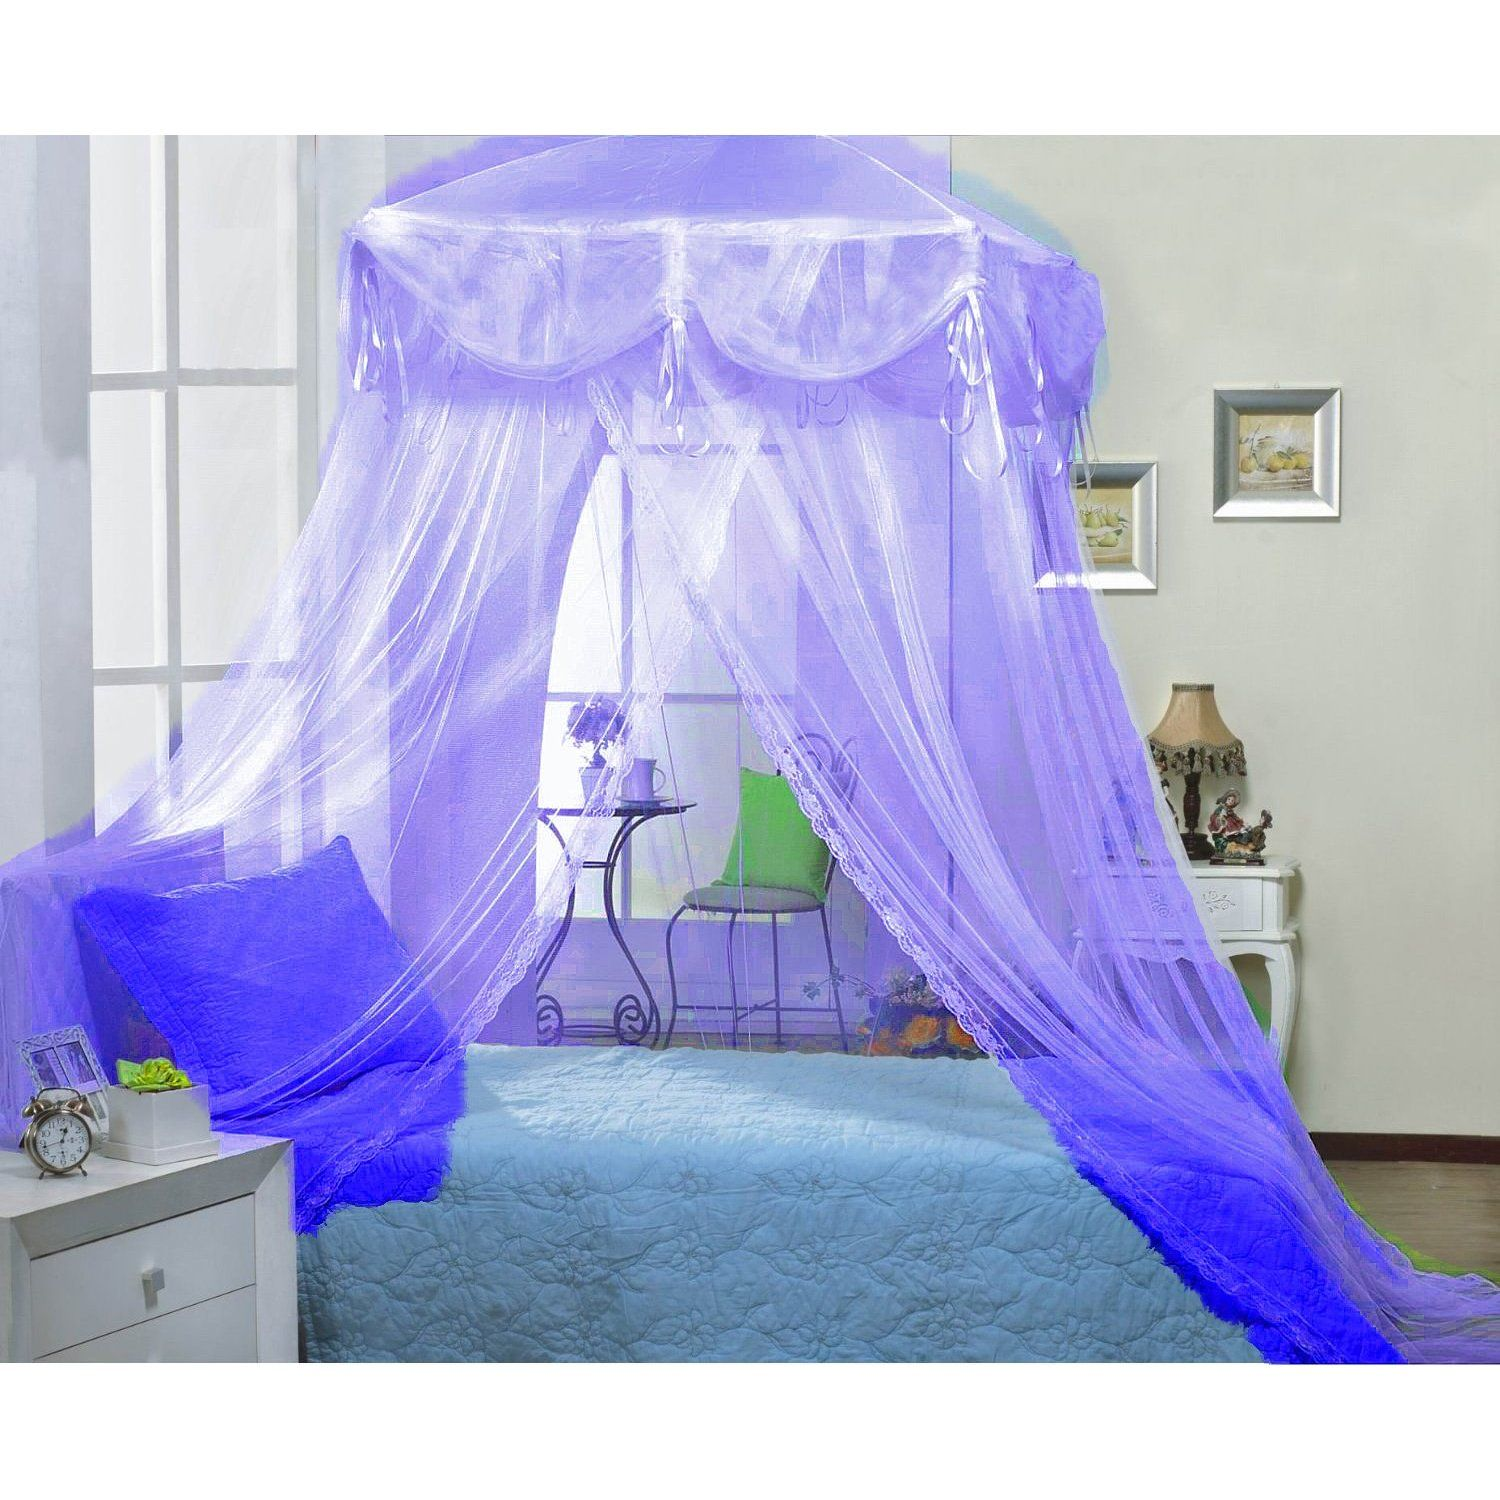 Purple Lilac Four Corner Square Princess Bed Canopy. Change The Coverlet To  A Pastel Pink